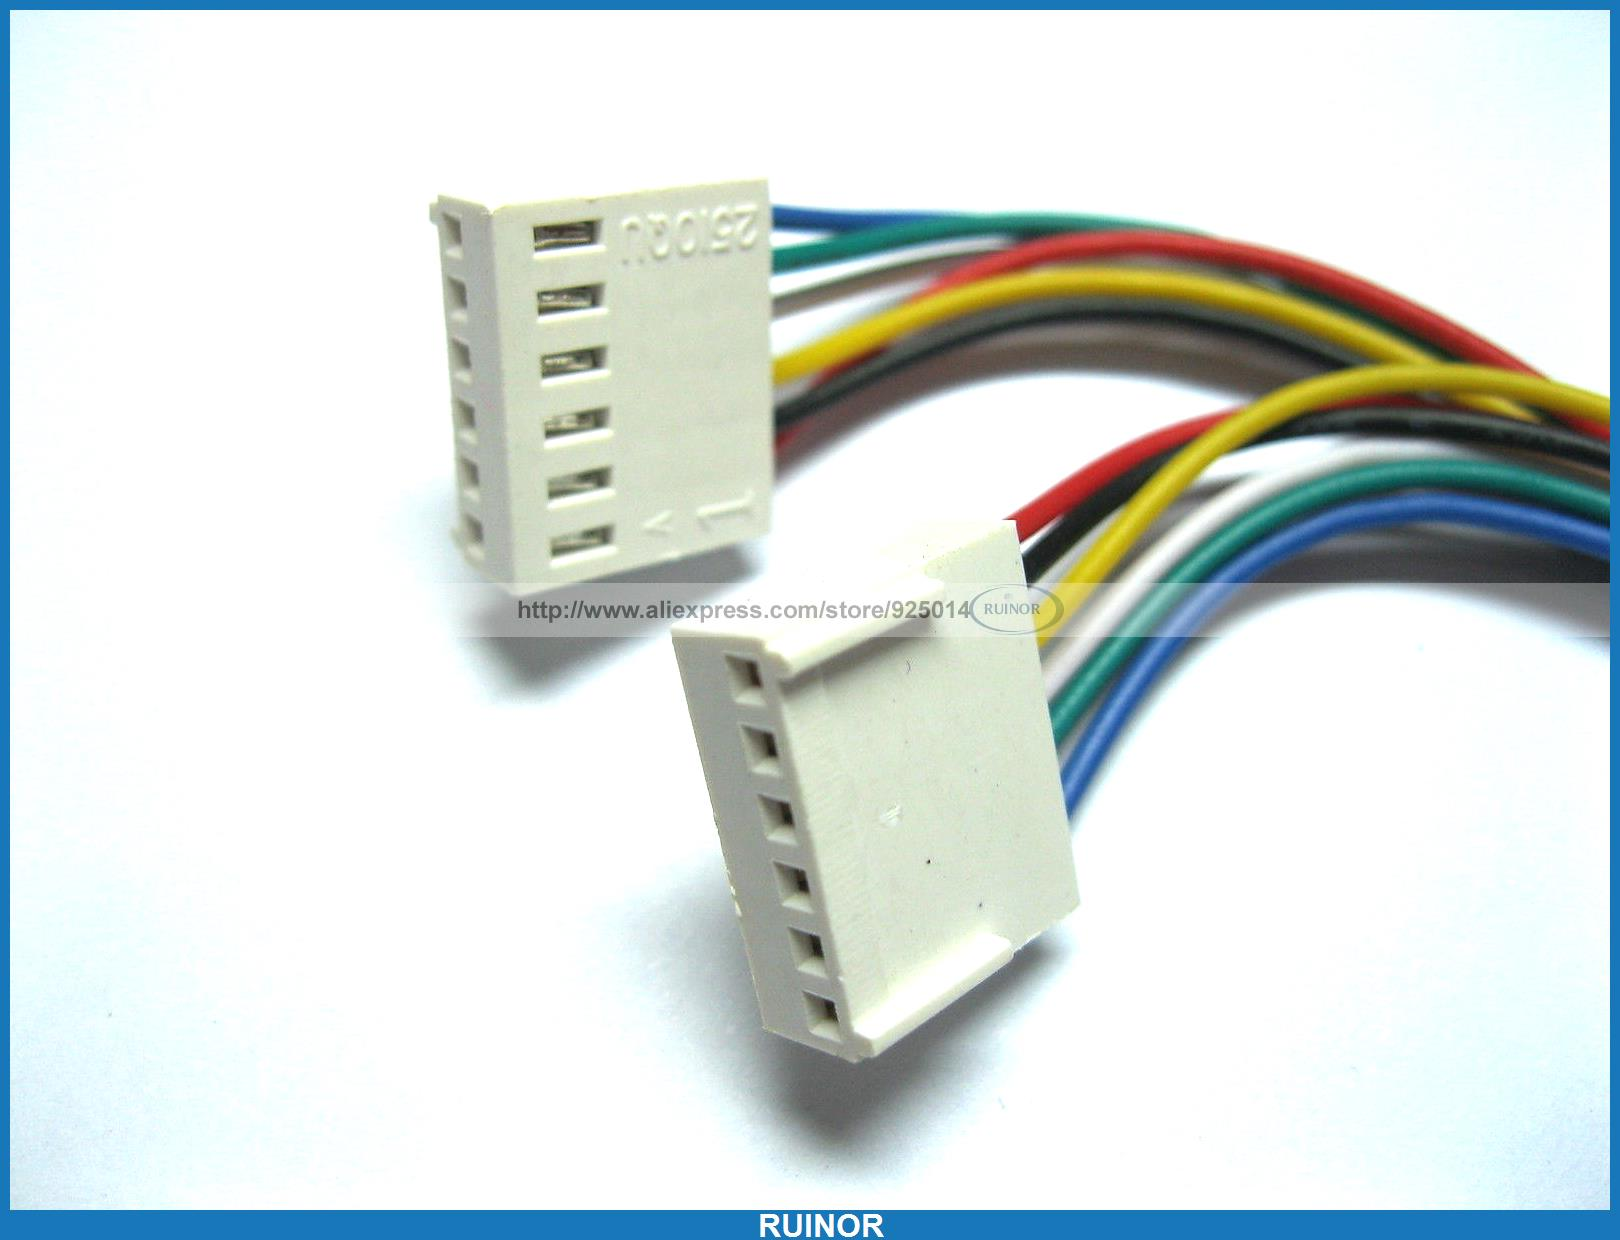 20 Pcs 2510 2.54mm Pitch 6 Pin Female Connector with 26AWG 300mm Leads Cable